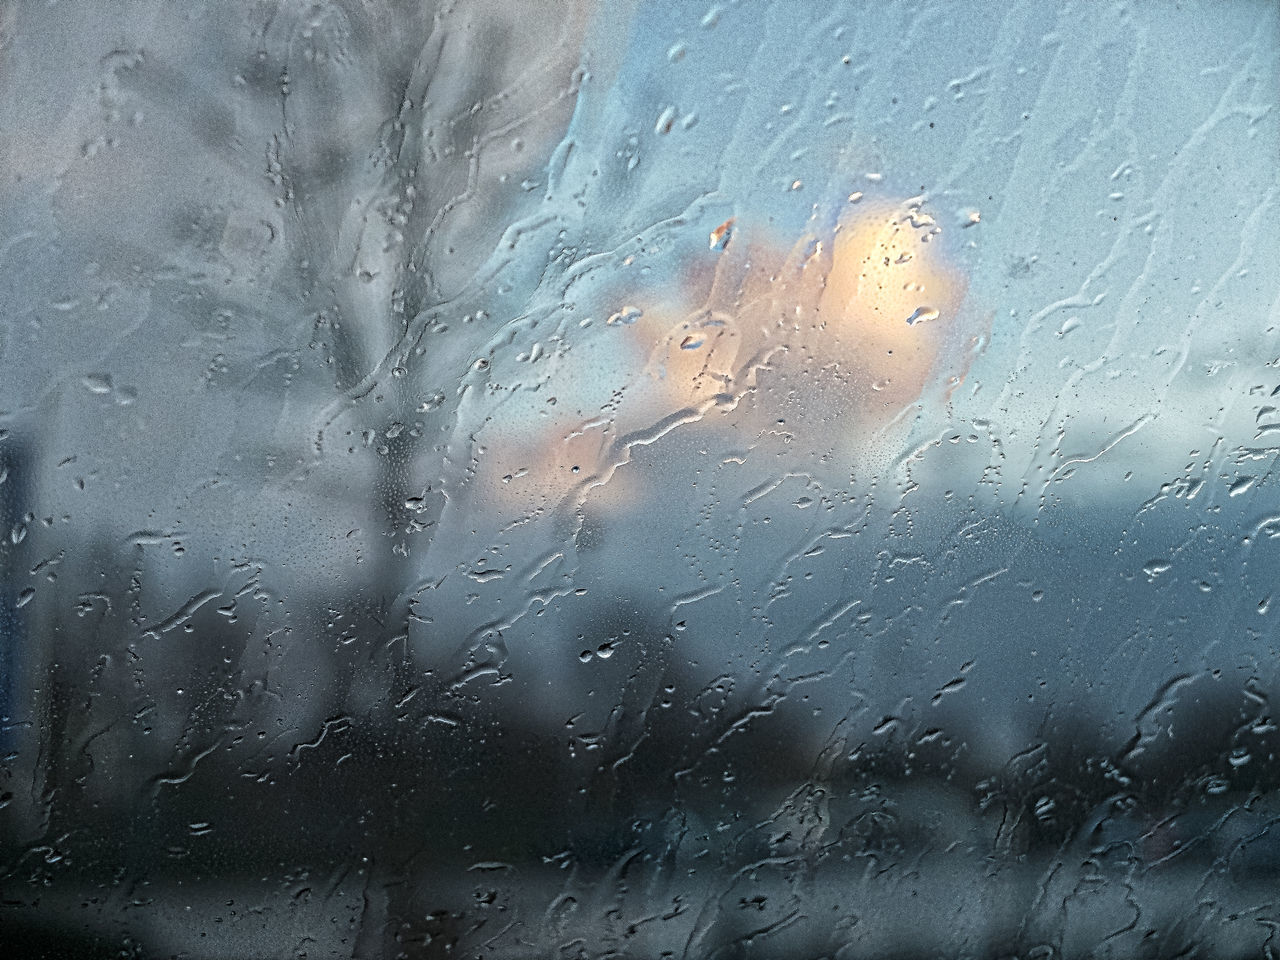 window, wet, rain, drop, glass - material, backgrounds, full frame, water, raindrop, weather, indoors, no people, condensation, close-up, day, nature, sky